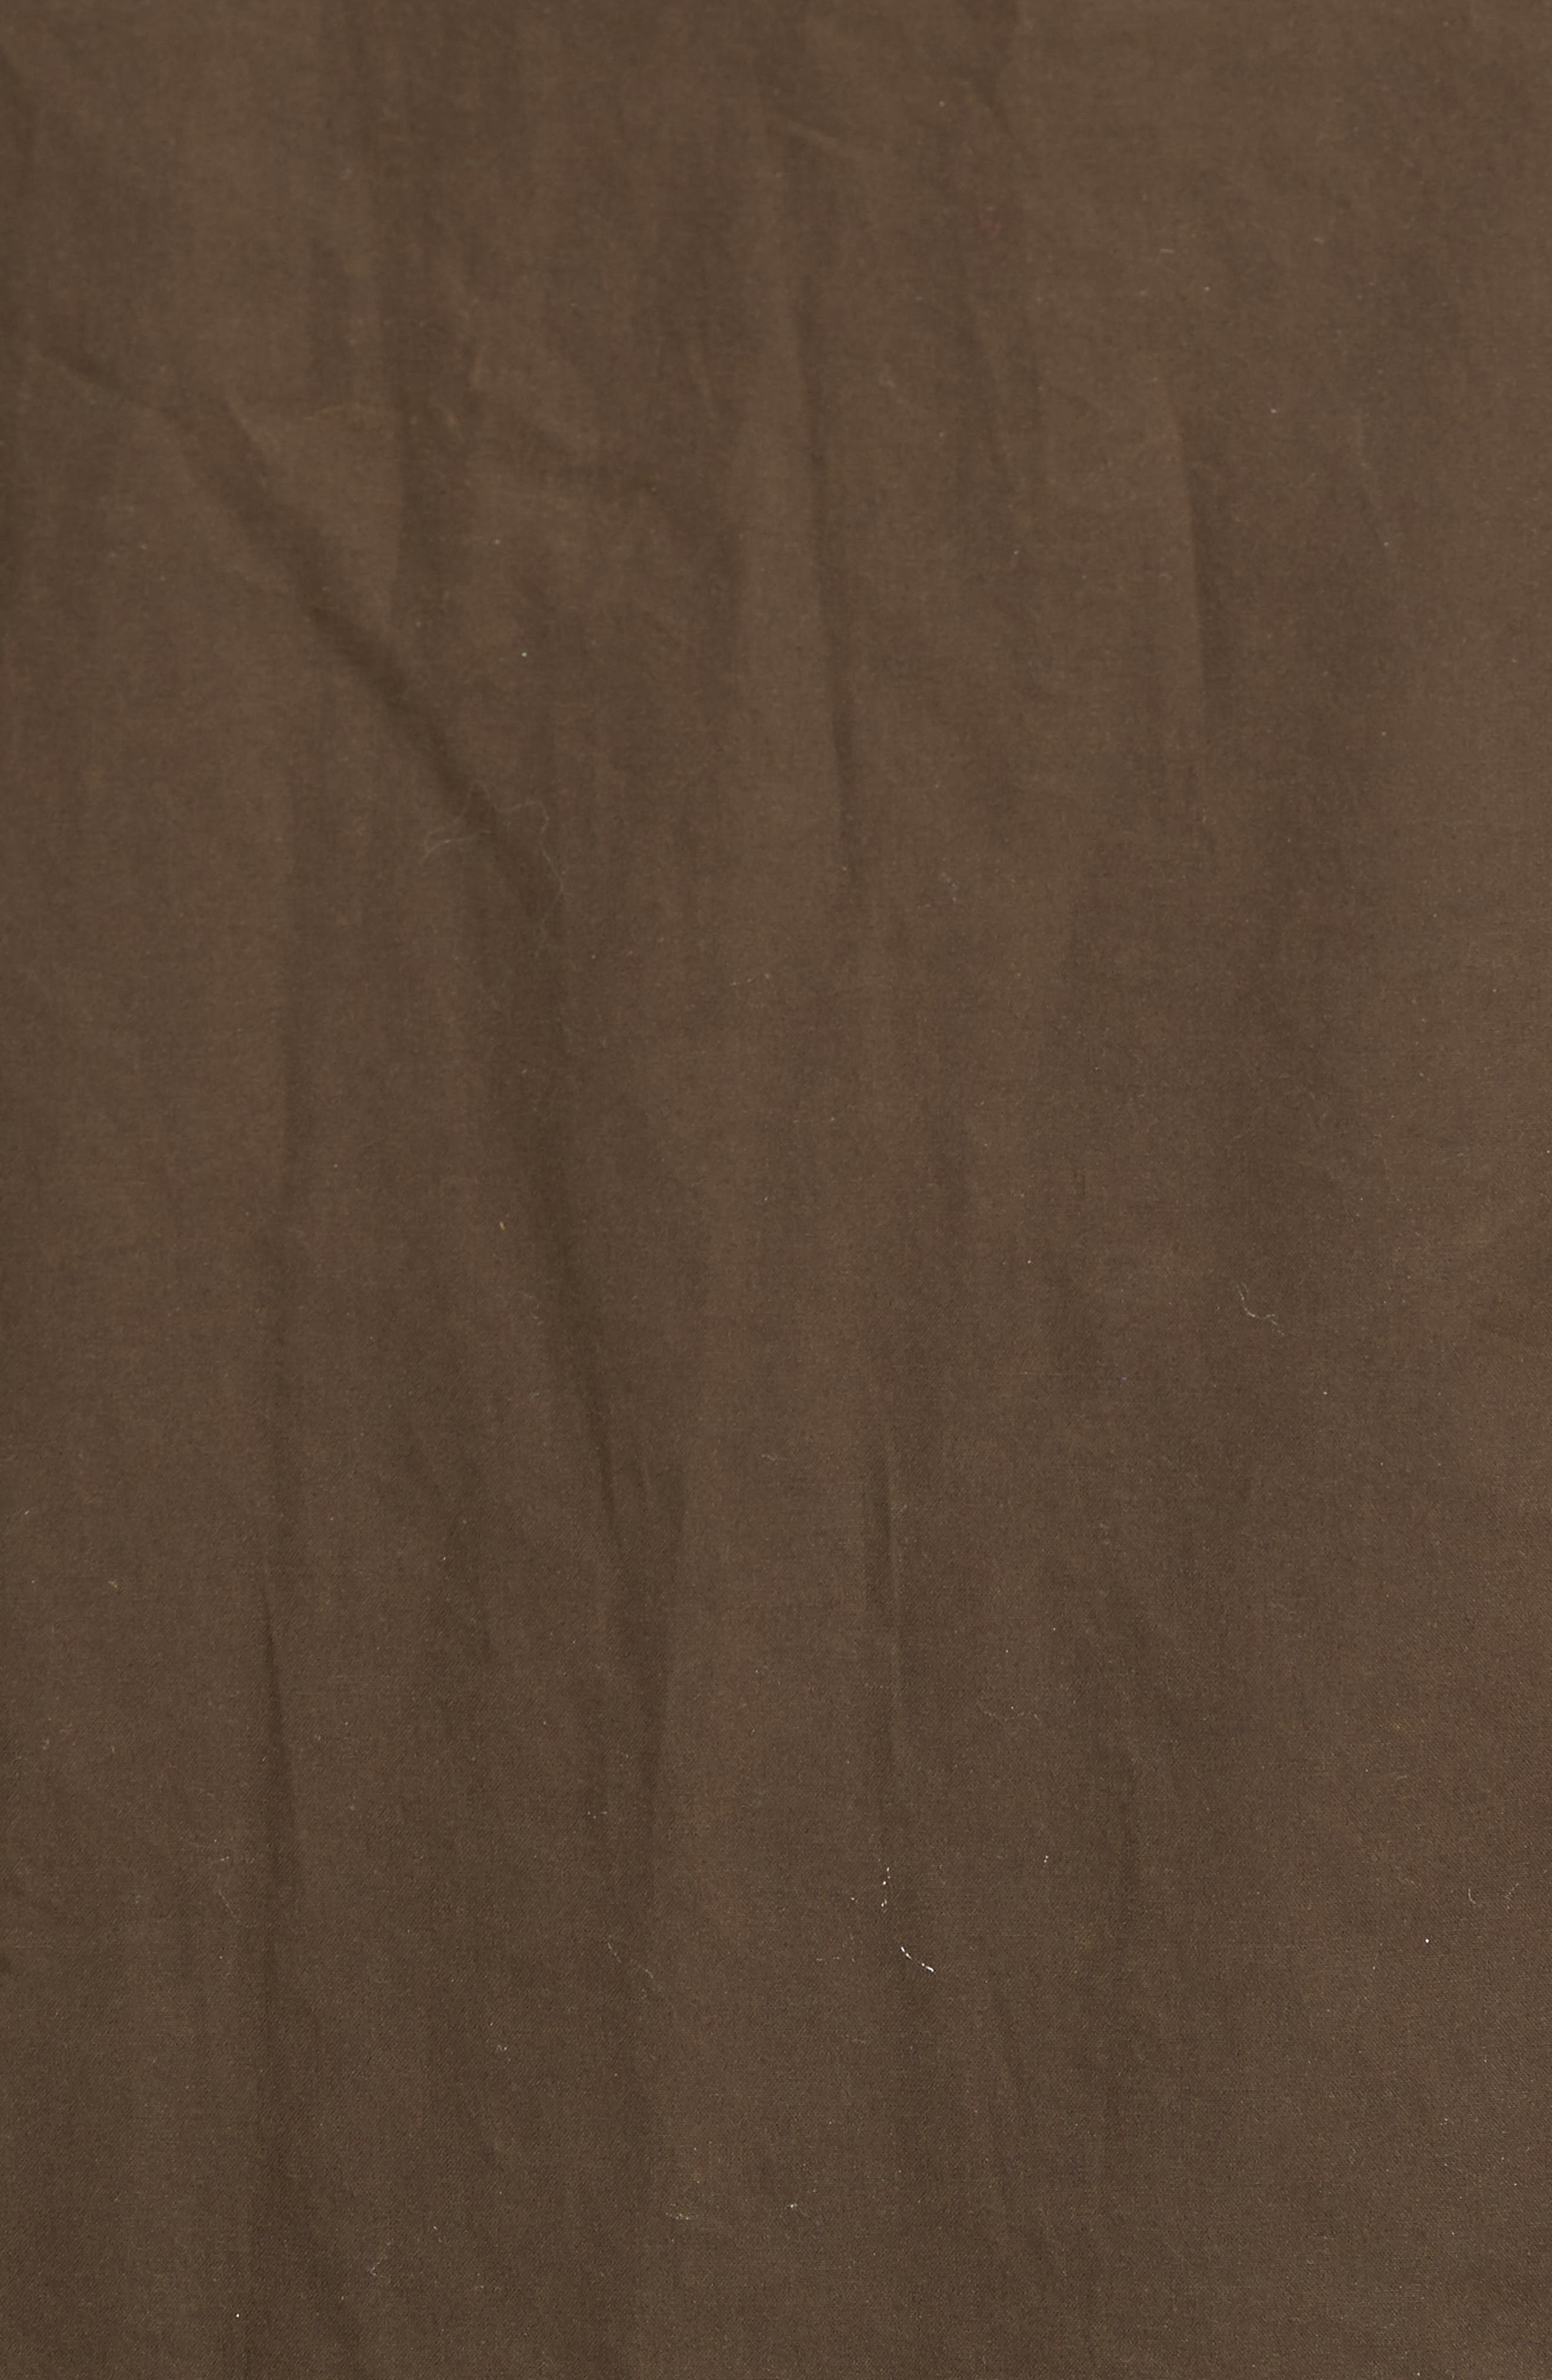 Harrison Wine Country Field Jacket,                             Alternate thumbnail 6, color,                             391